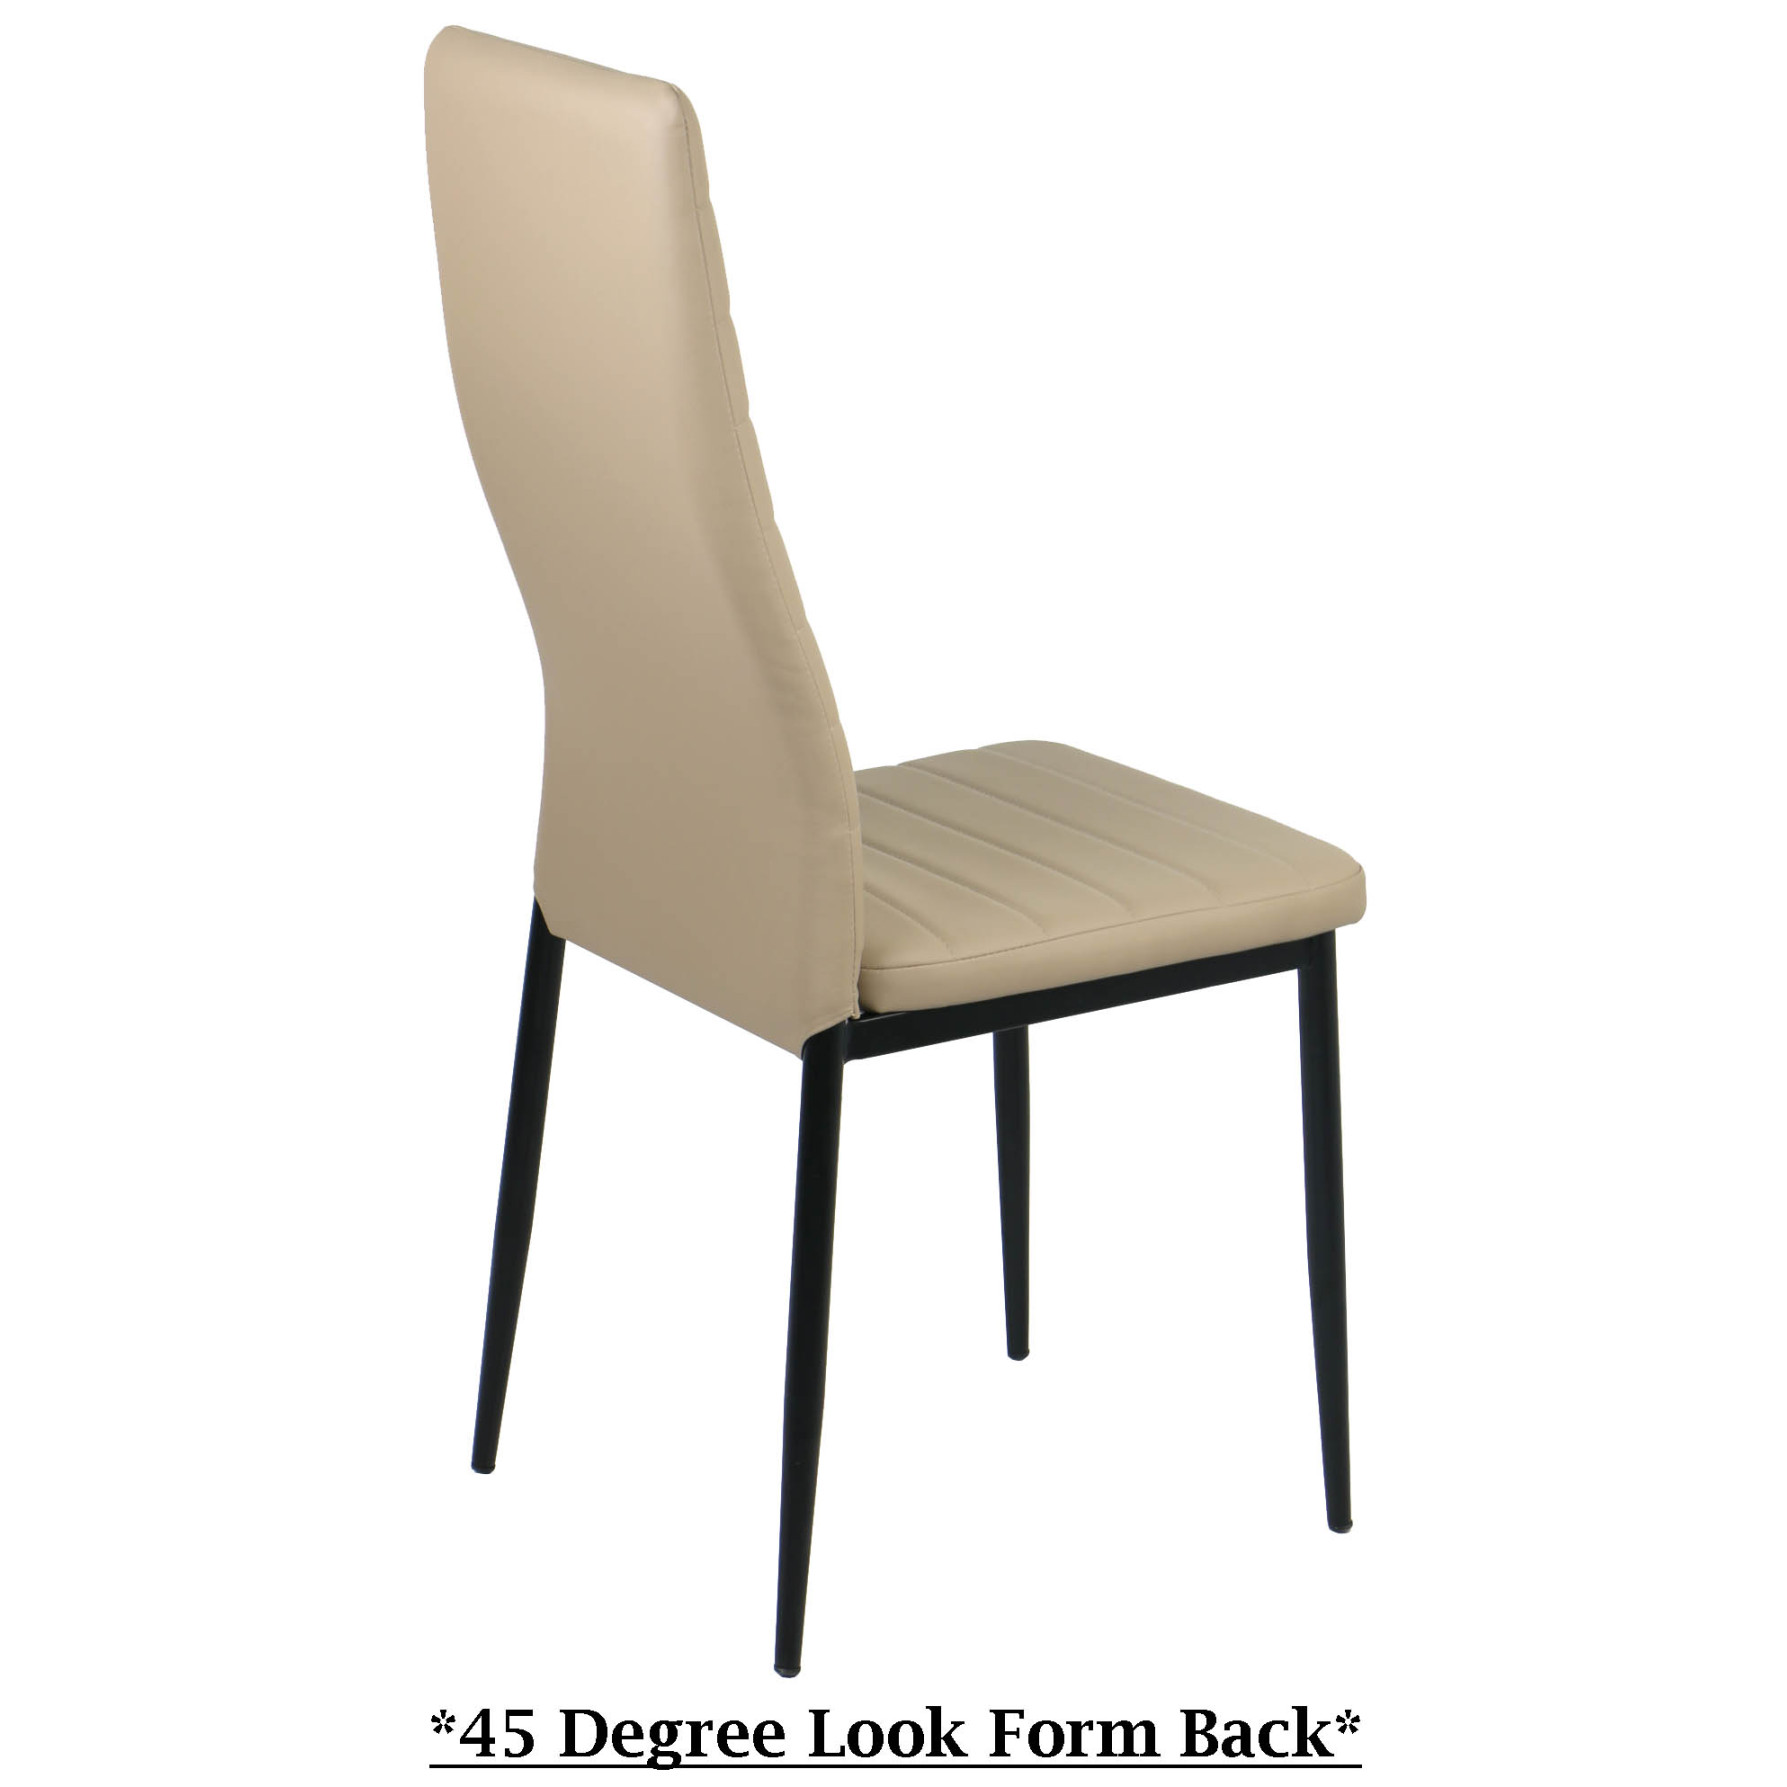 Champagne Dining Room Furniture: Quinn Dining Chair Champagne